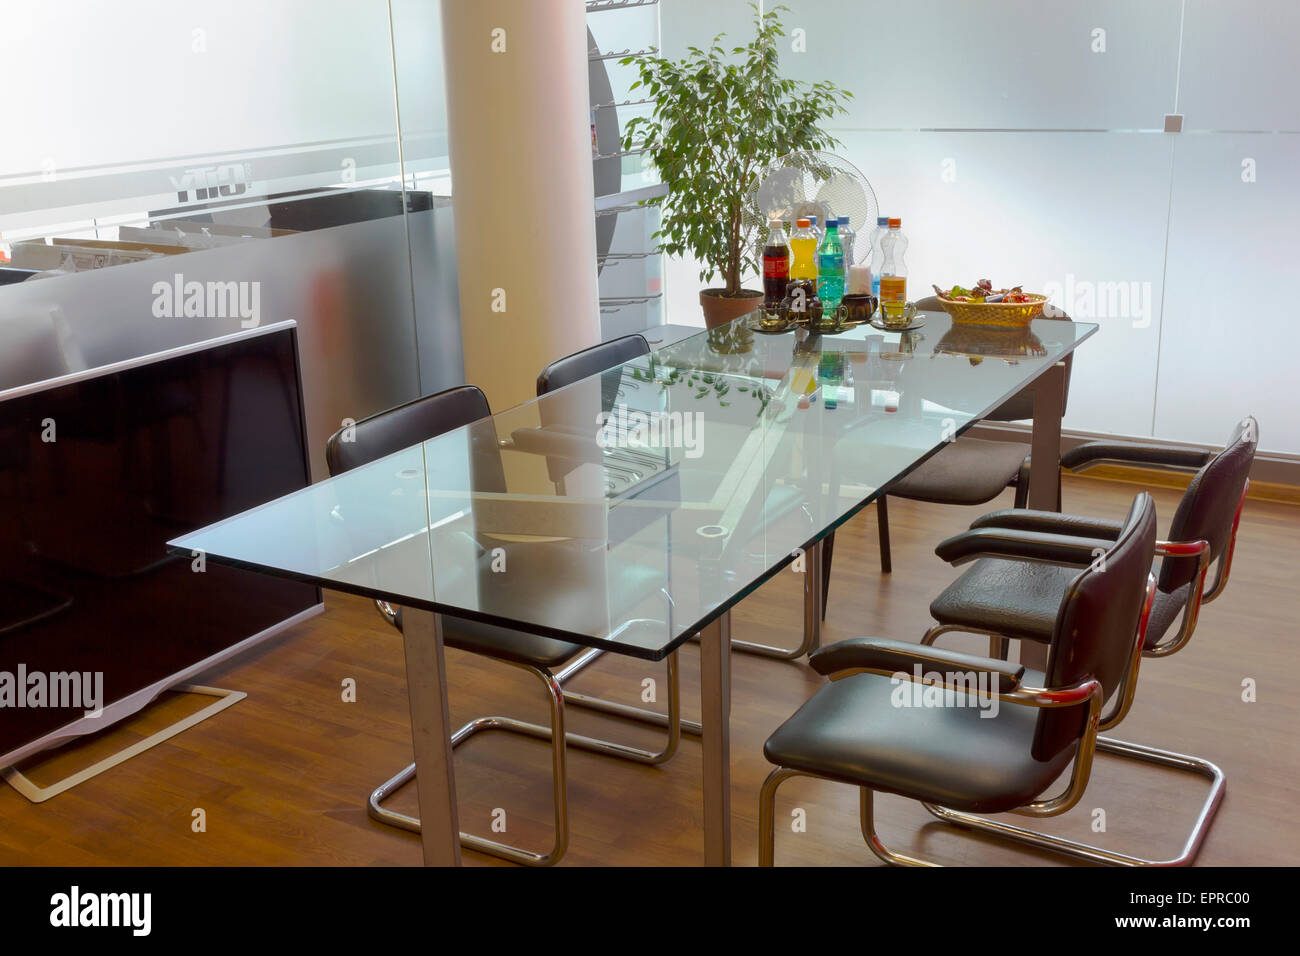 Meeting Lunch Break In A Small Conference Hall With Glass Walls And - Small glass conference table